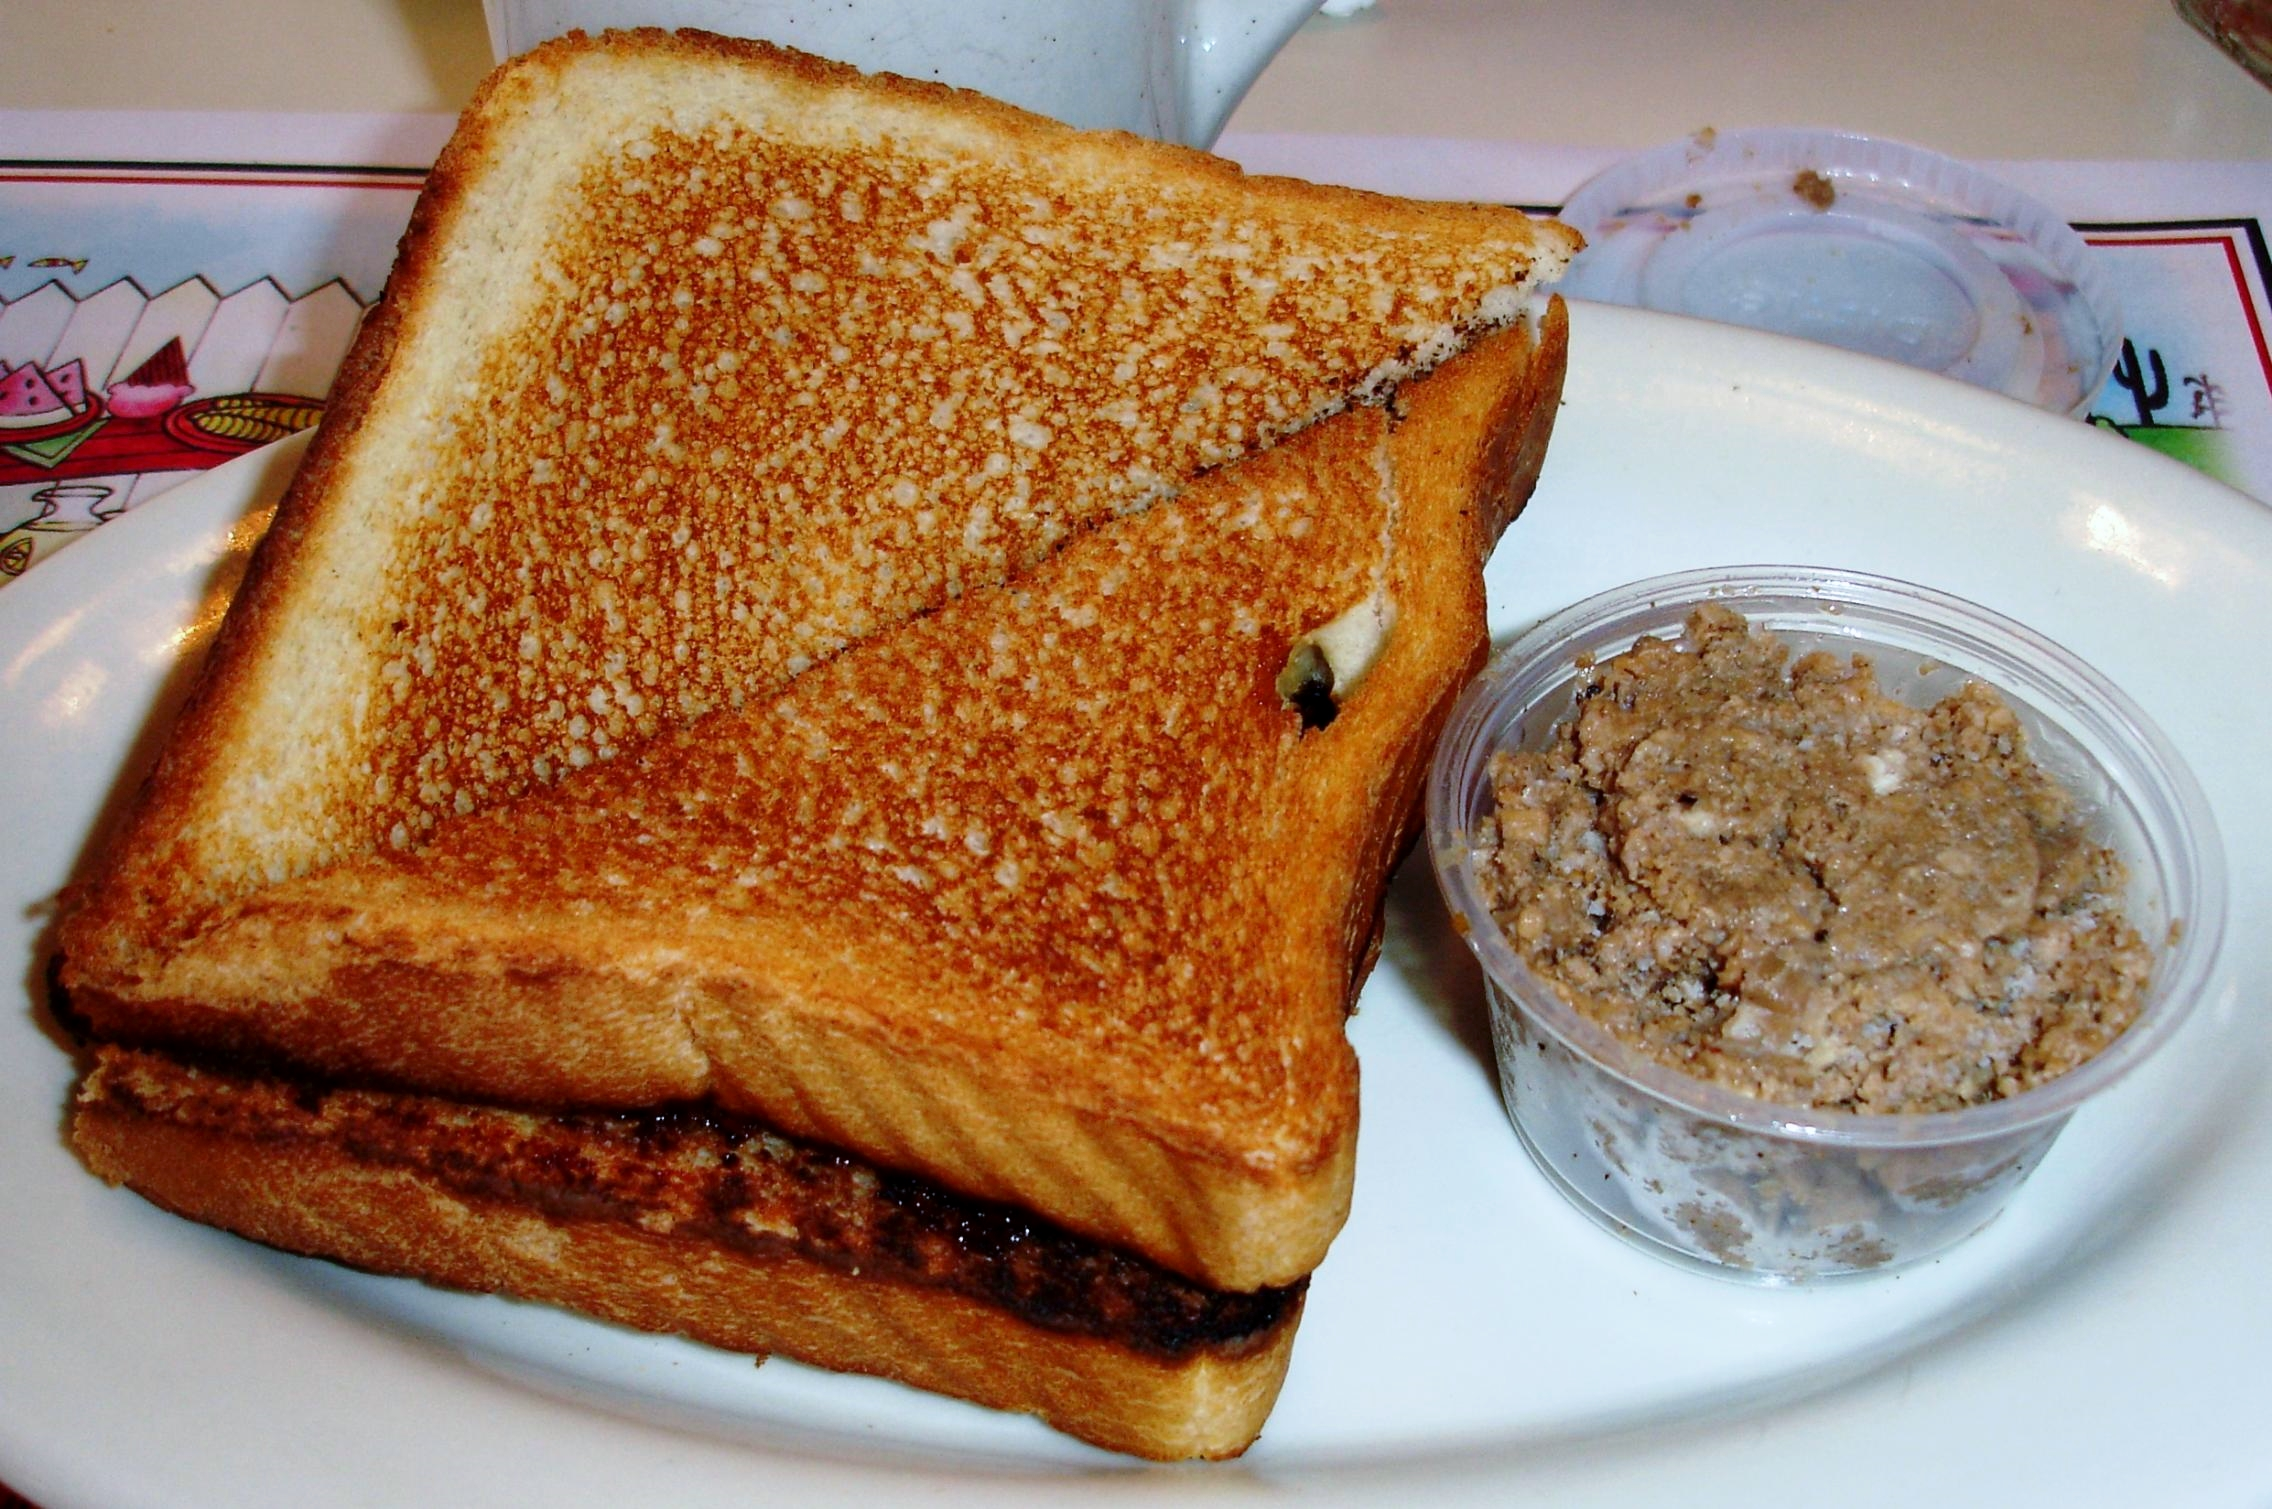 A traditional French Canadian breakfast: creton and toast. Creton is a cold pork spread.